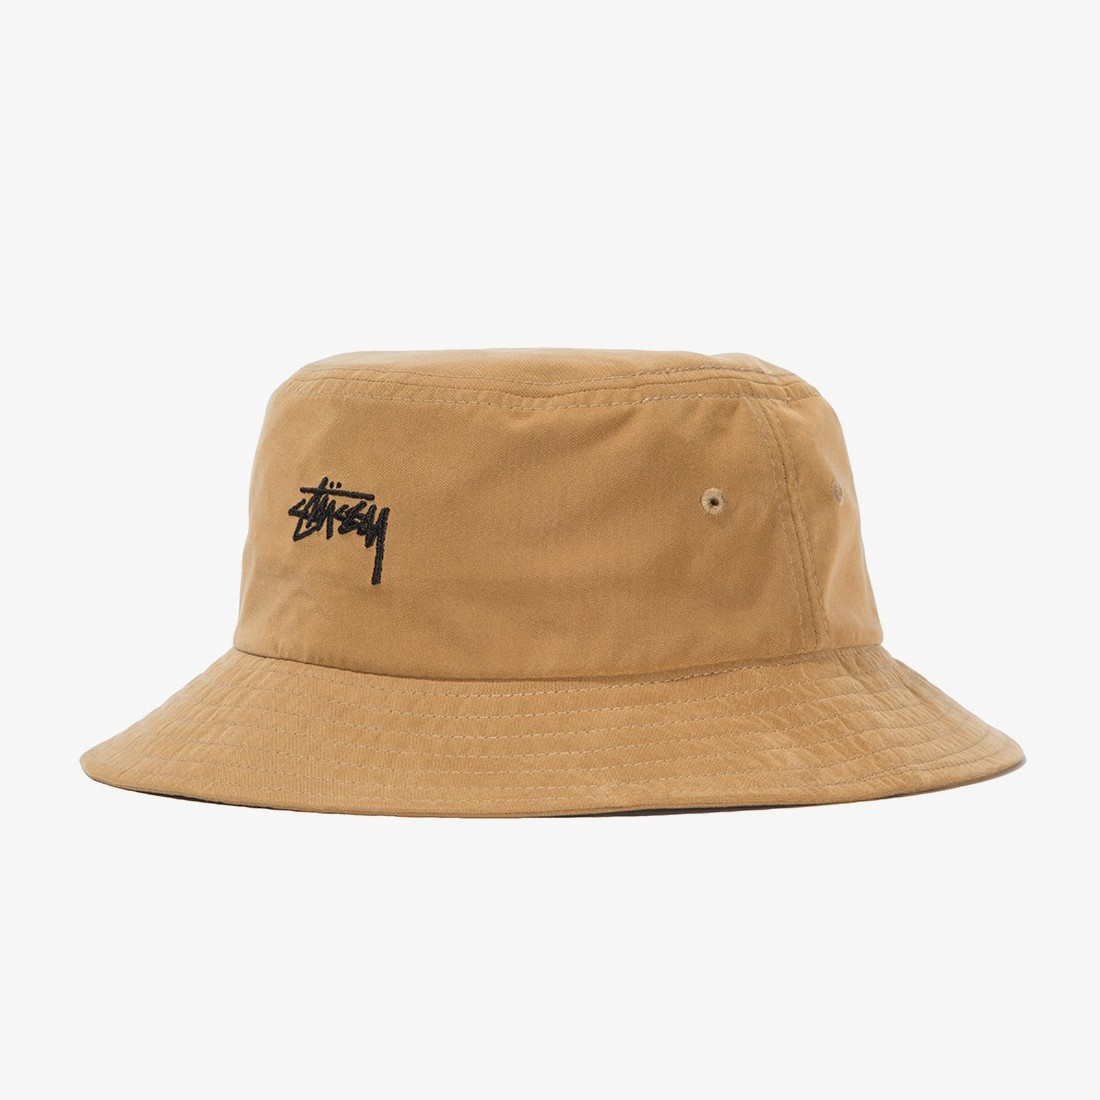 46e45f164da Stüssy Clothing and accessories onine